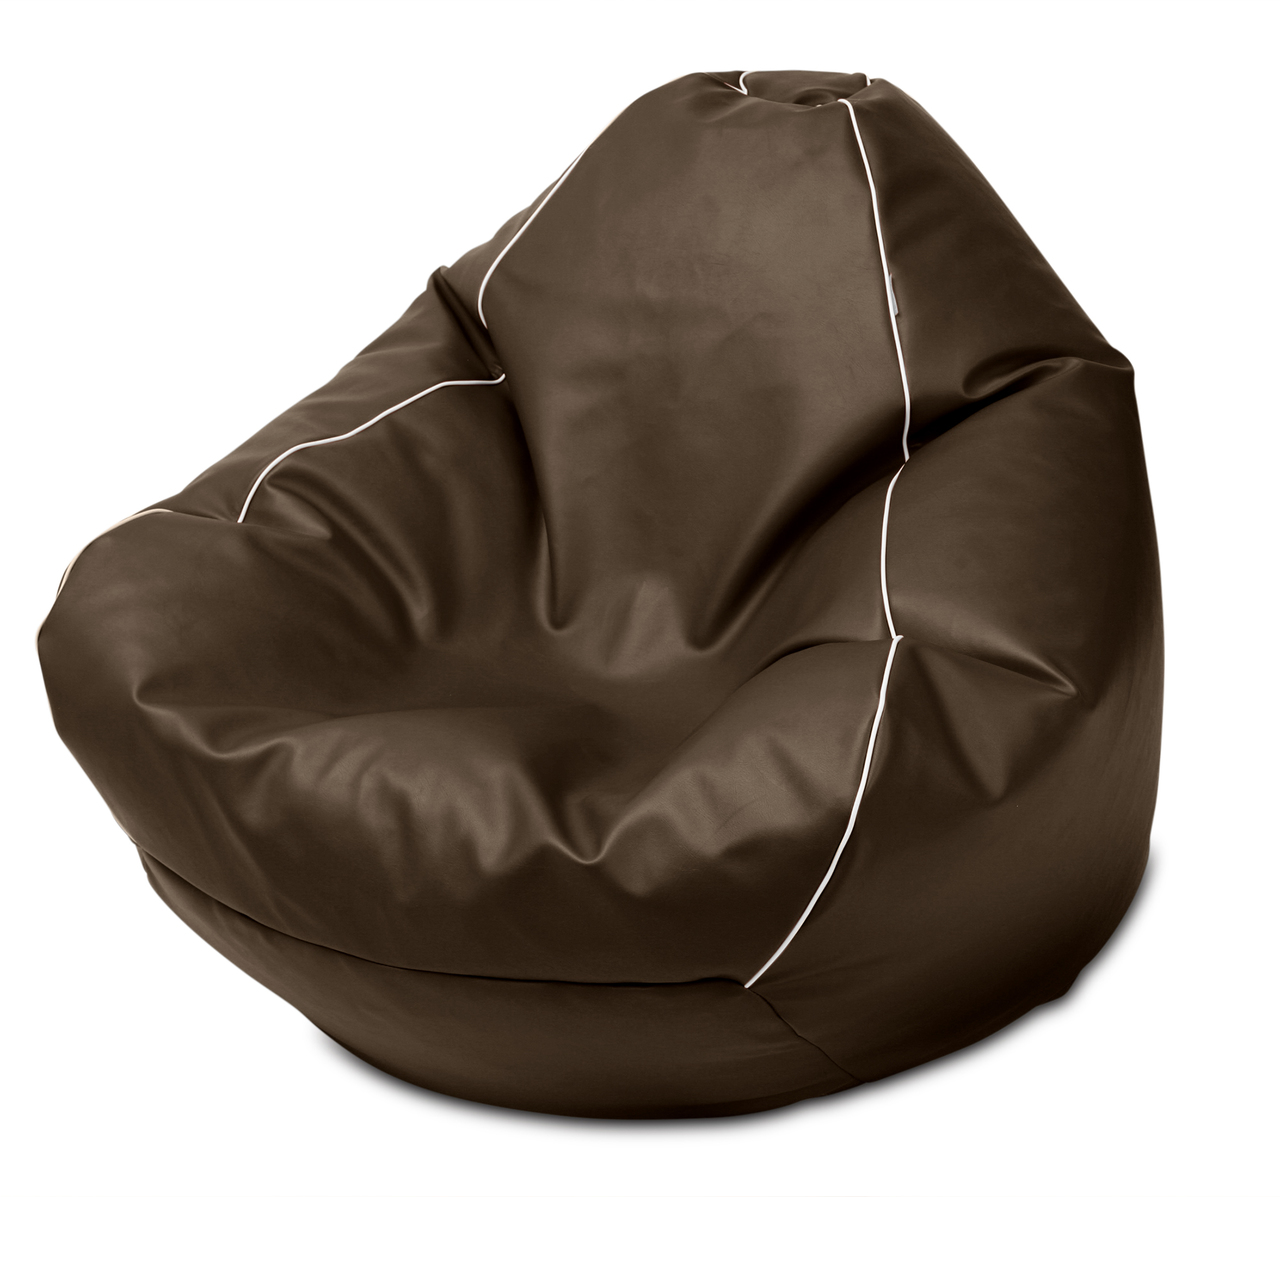 Retro Queen Size Bean Bag in chocolate